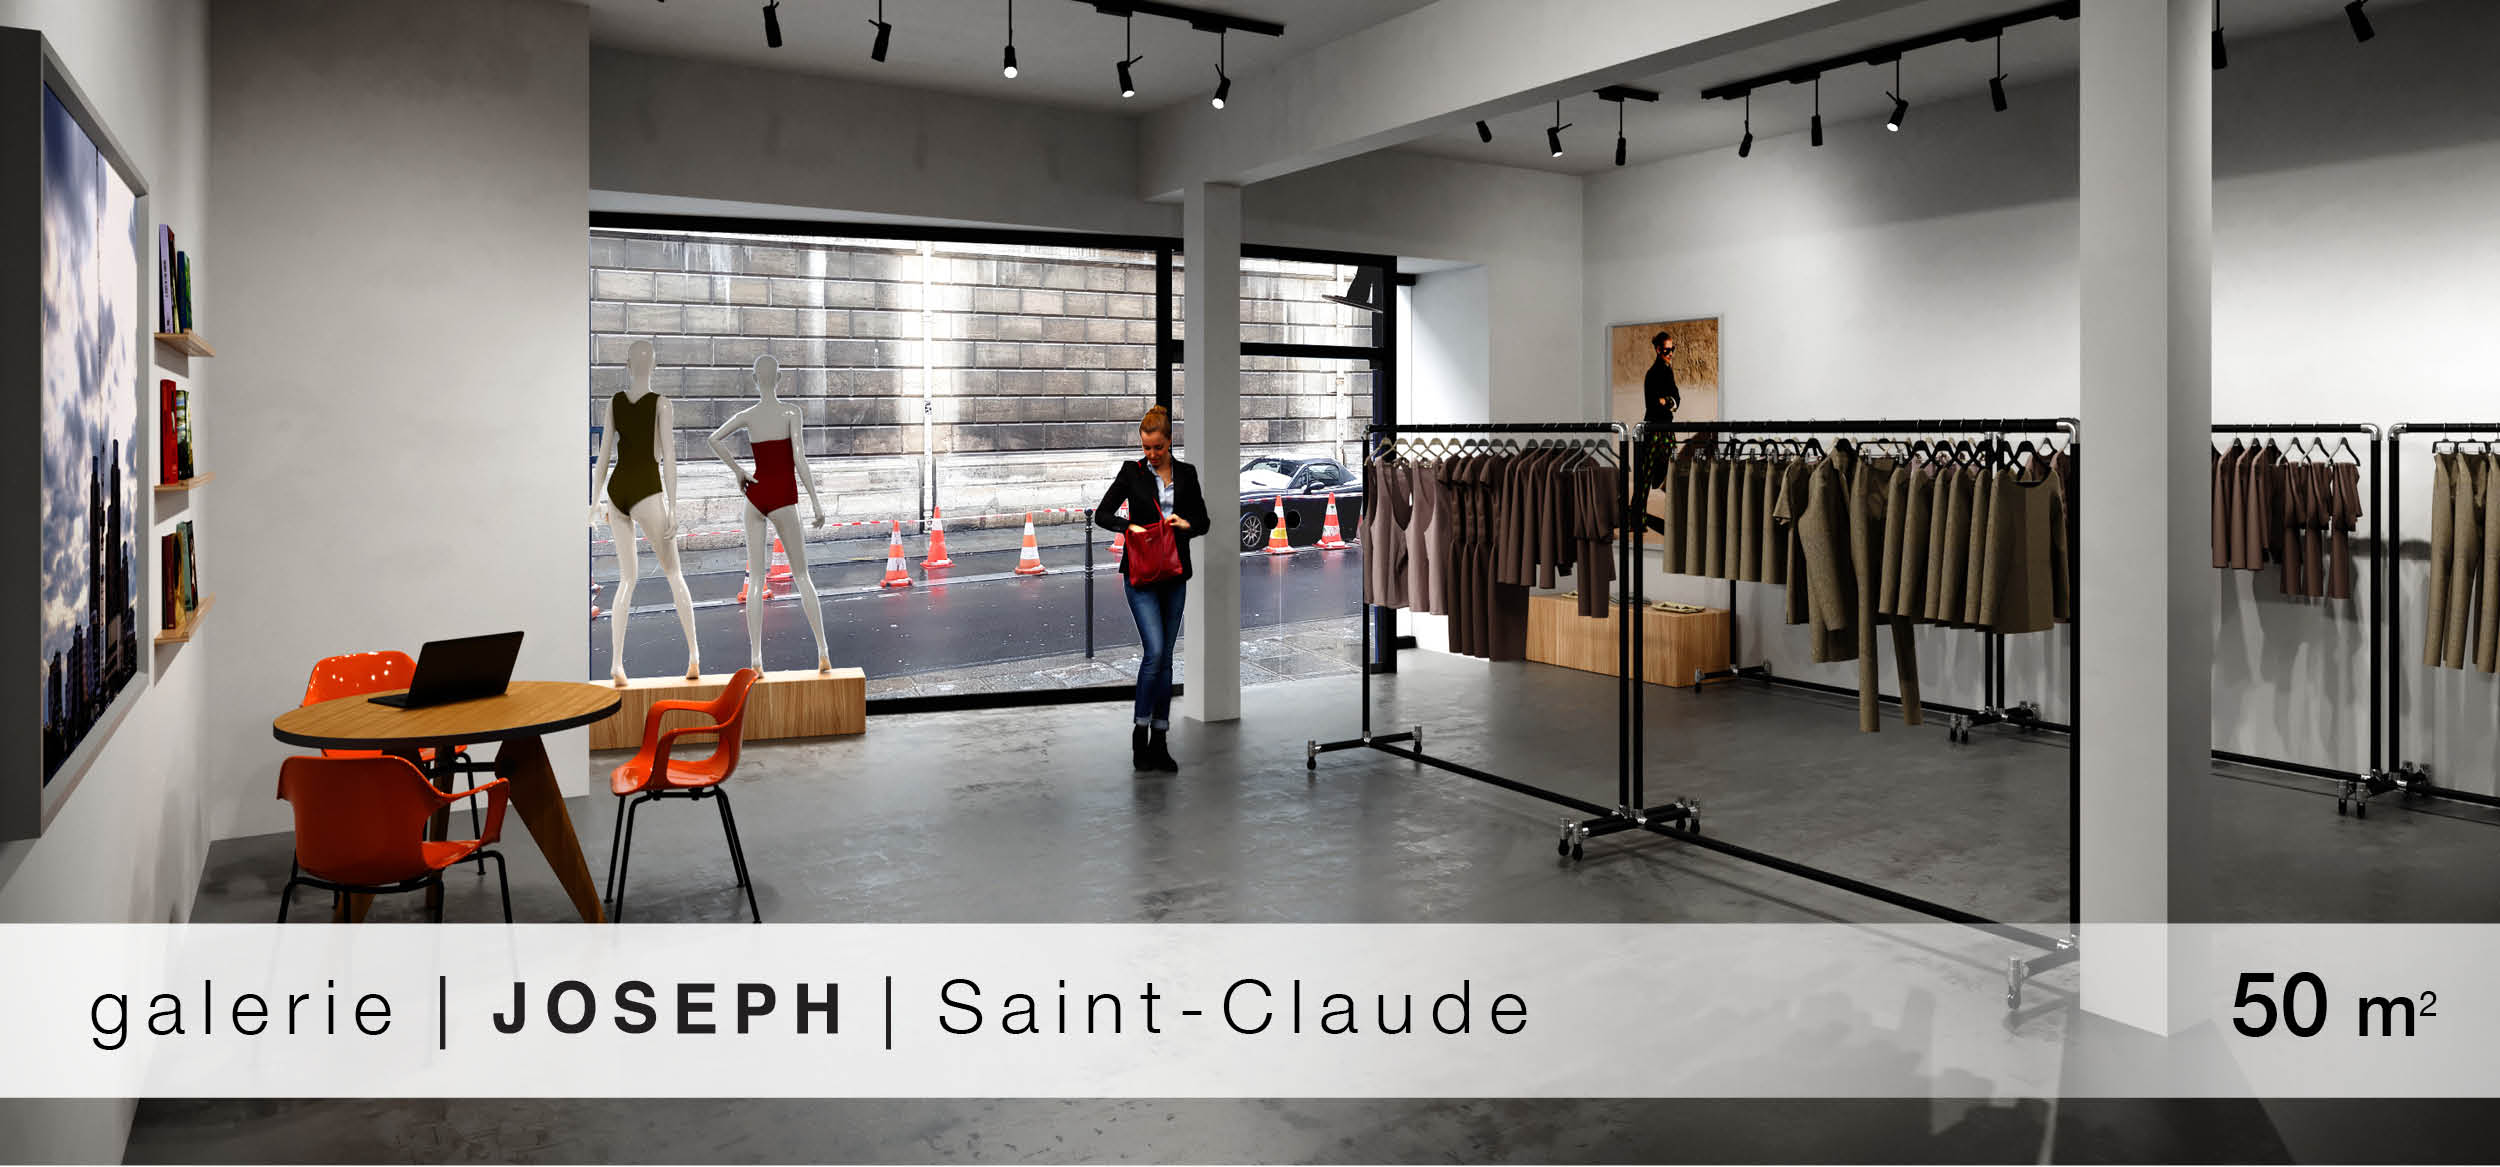 galerie Joseph Shawroom Saint-Claude location showroom Saint-Claude